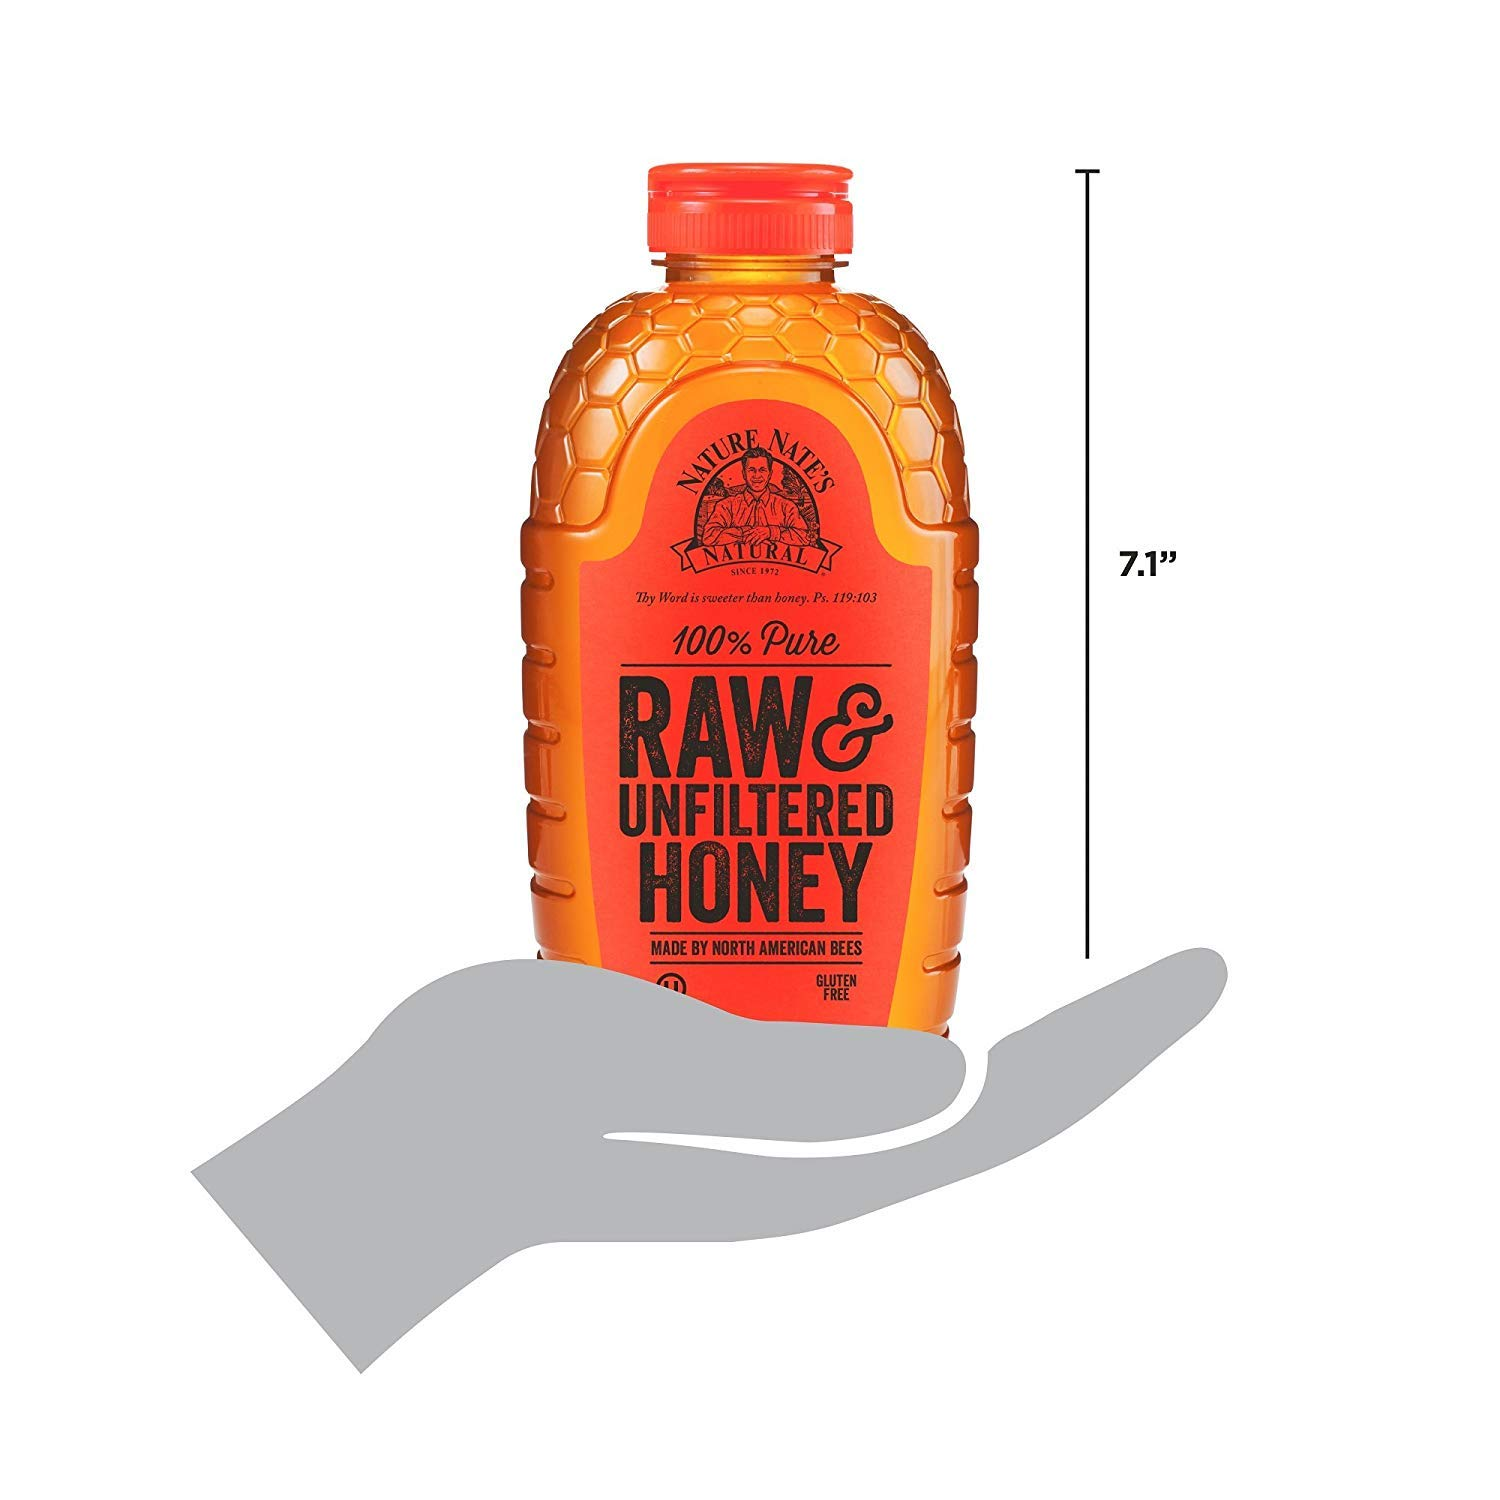 Nature Nate's 100% Pure Raw & Unfiltered Honey; 32-oz. Certified; Enjoy Honey's Balanced Flavors, Wholesome Benefits and Sweet Natural Goodness, 5 Pack by Nature Nate's (Image #4)